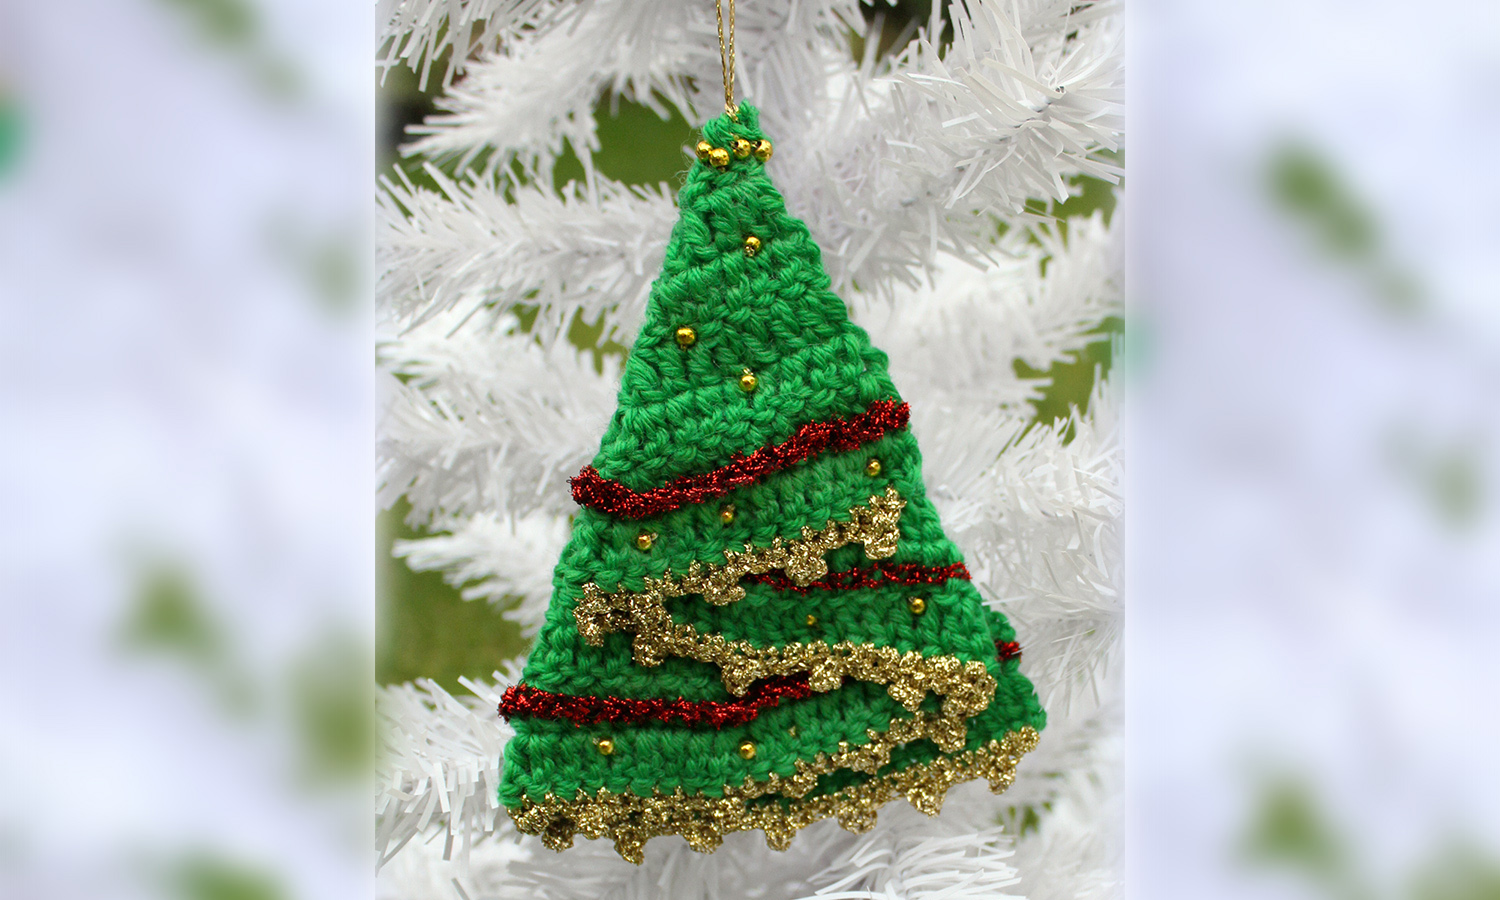 crochet christmastree decoration knit crochet christmas. Black Bedroom Furniture Sets. Home Design Ideas